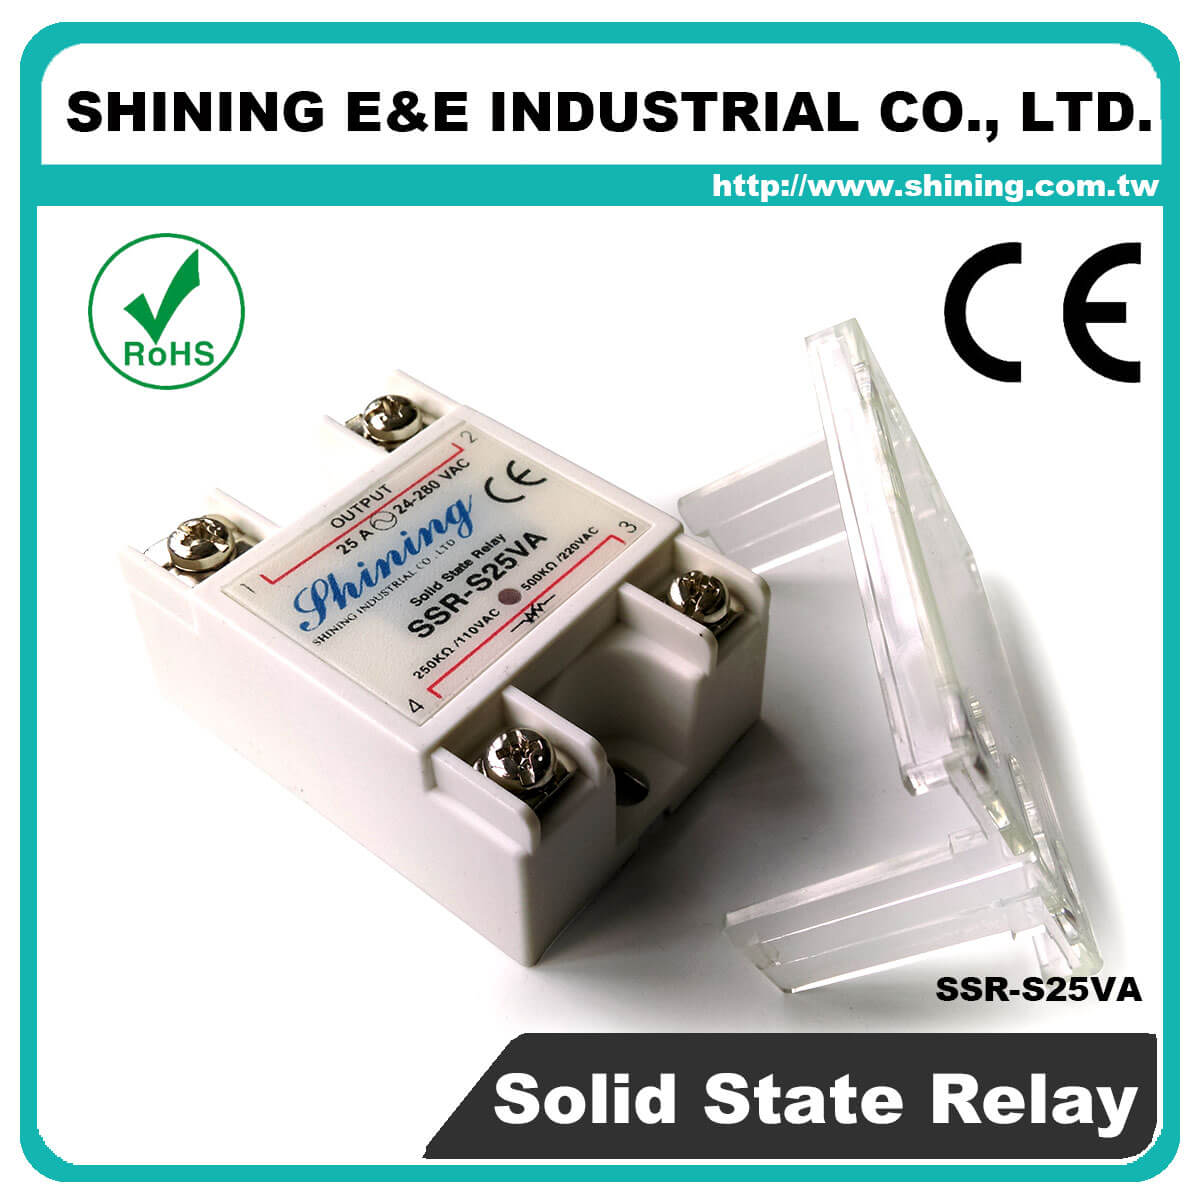 Ssr Sxxva Series Vrtoac Single Phase Solid State Relay The Professional S25va Vr To Ac 25a 280vac S